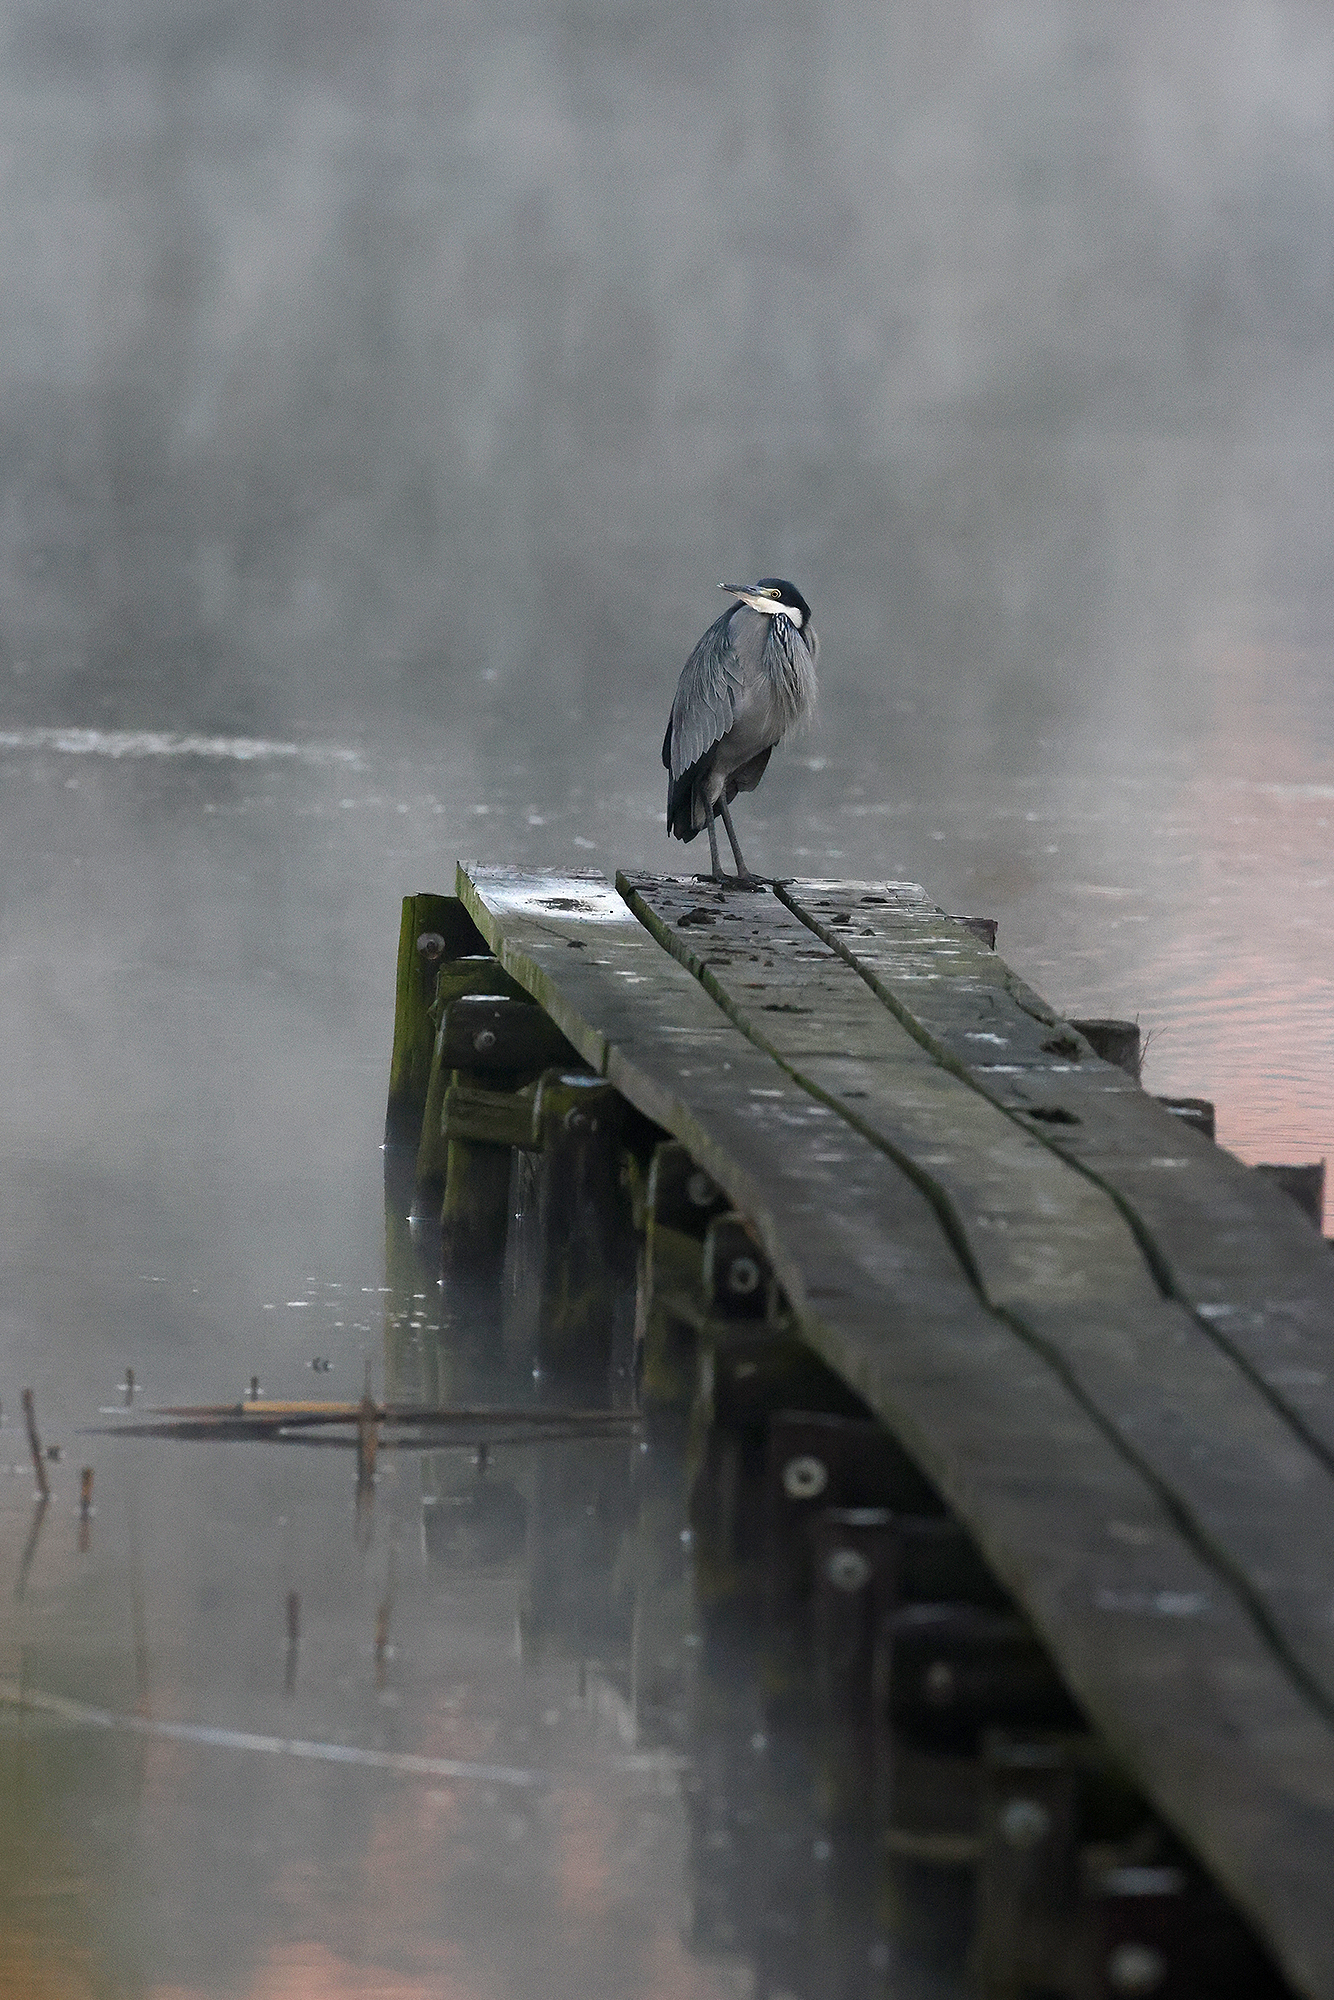 """""""Misty Mornings"""" ~ A Black-headed Heron stands motionless on a small jetty on a dam in the Natal Midlands, South Africa."""